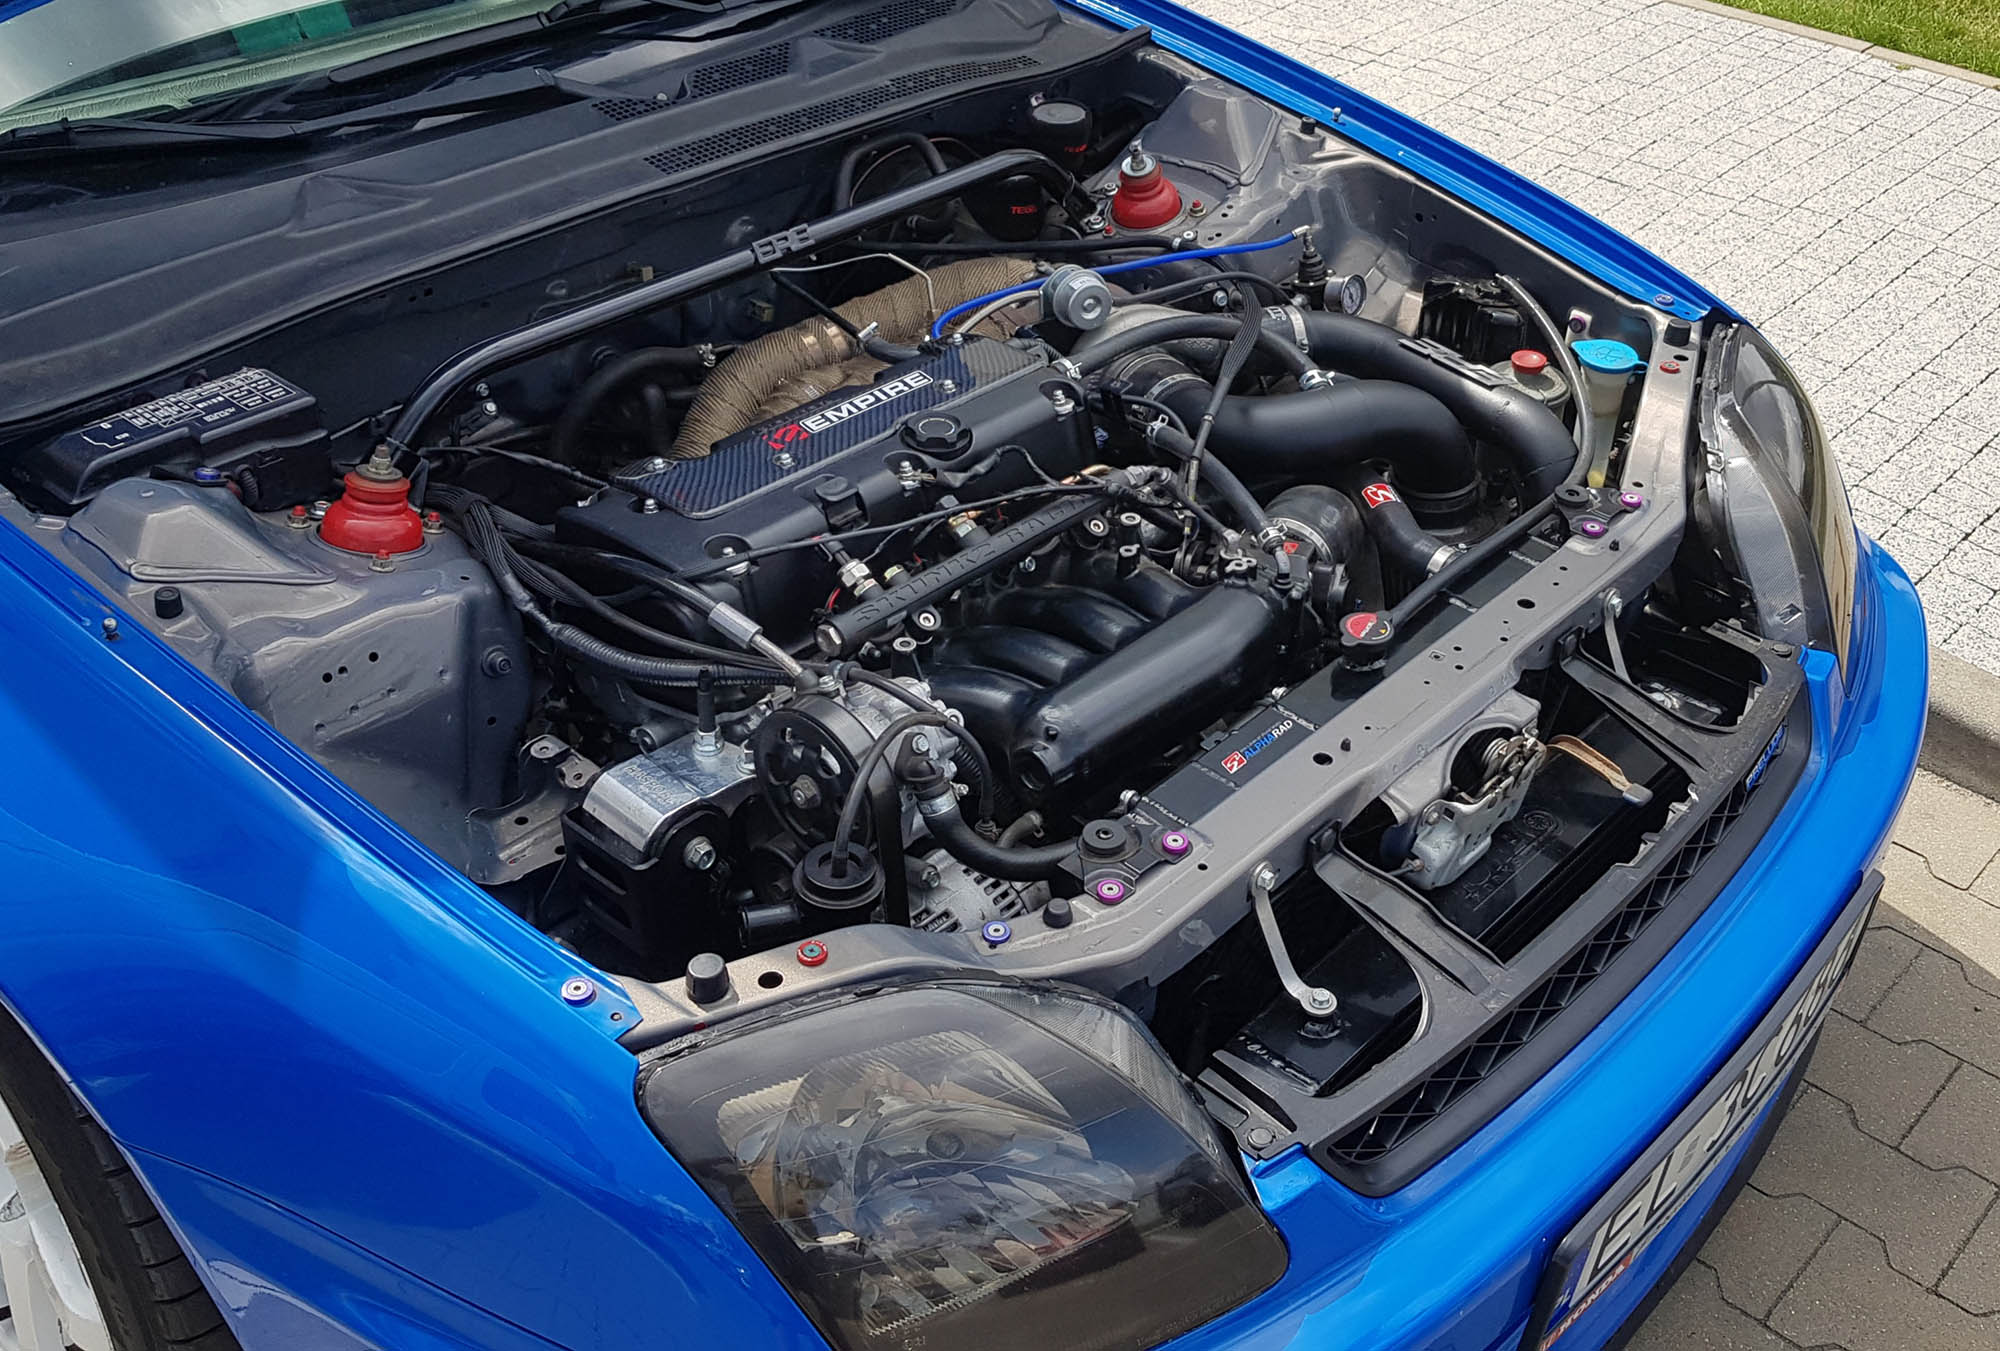 1997 Prelude with a Turbo K20 – Engine Swap Depot